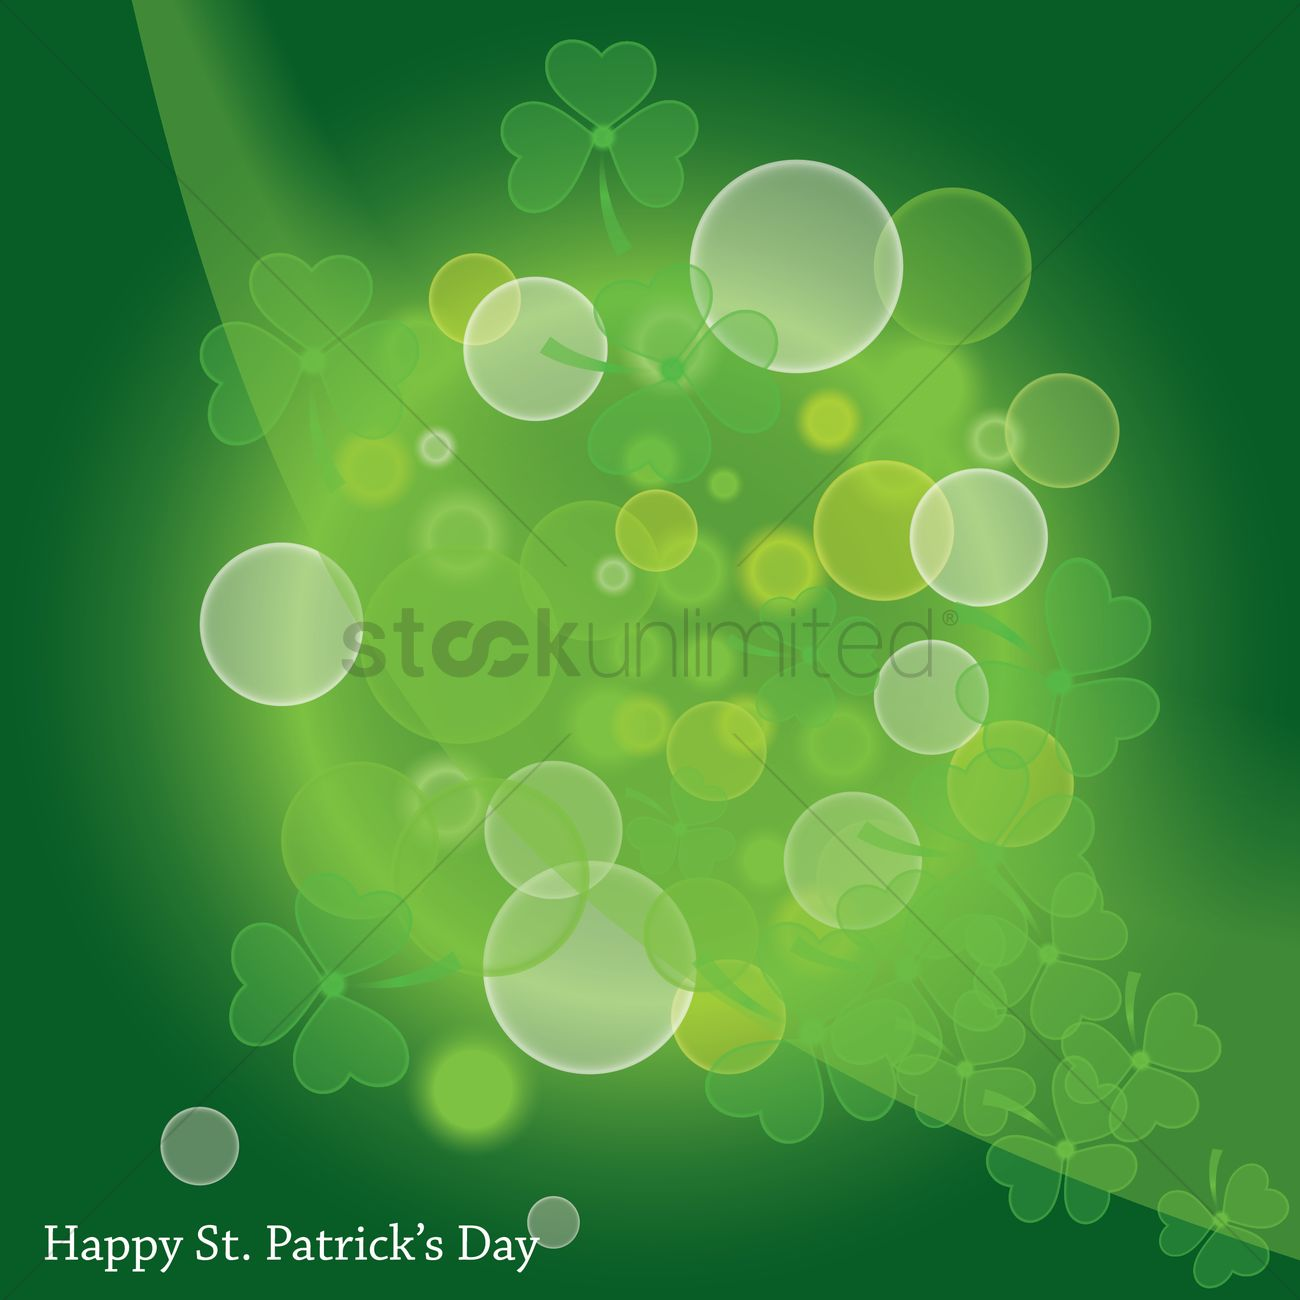 Happy Stpatricks Day Wallpaper Vector Image 1482581